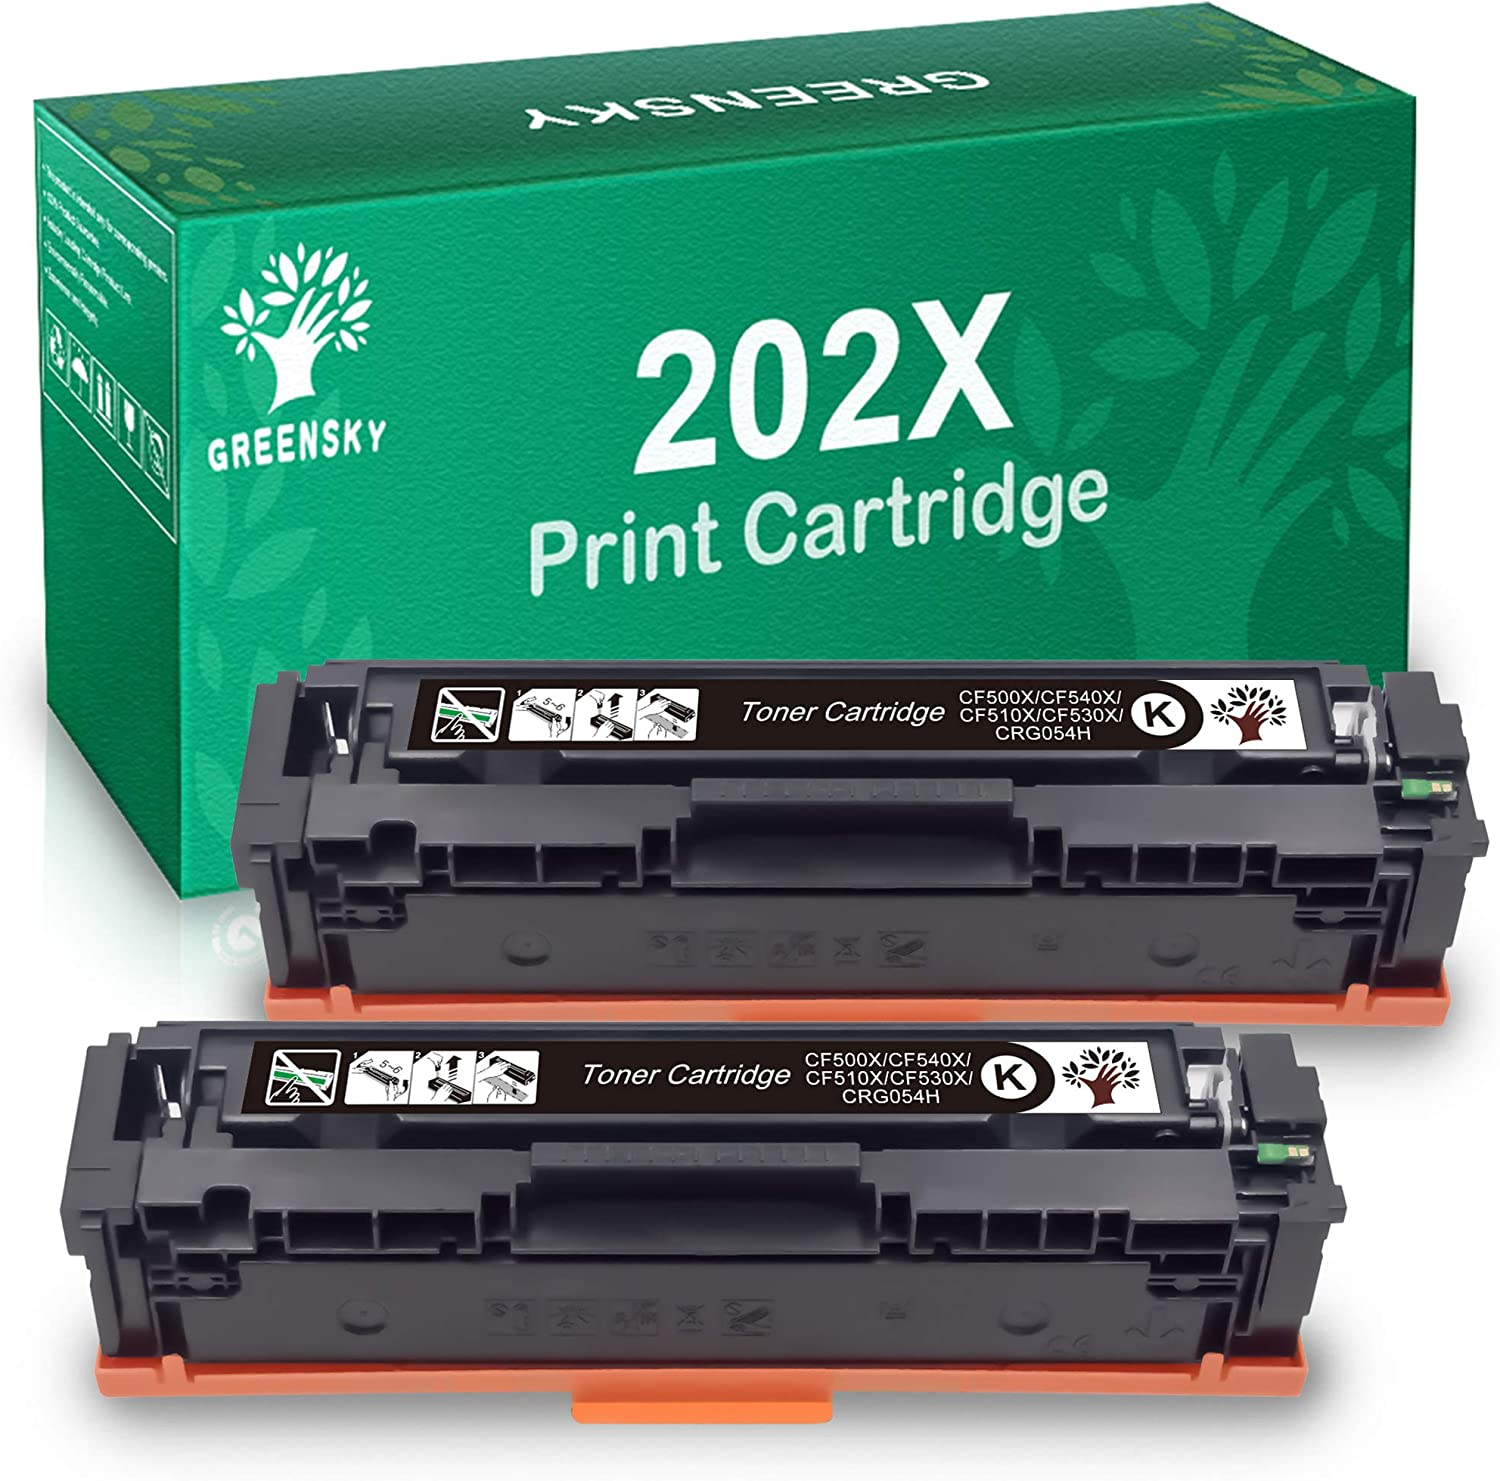 GREENSKY Compatible Toner Cartridges Replacement for HP 202X CF500X for Color Laserjet Pro MFP M281fdw M281cdw M254dw M254dn M254nw (2-Black)